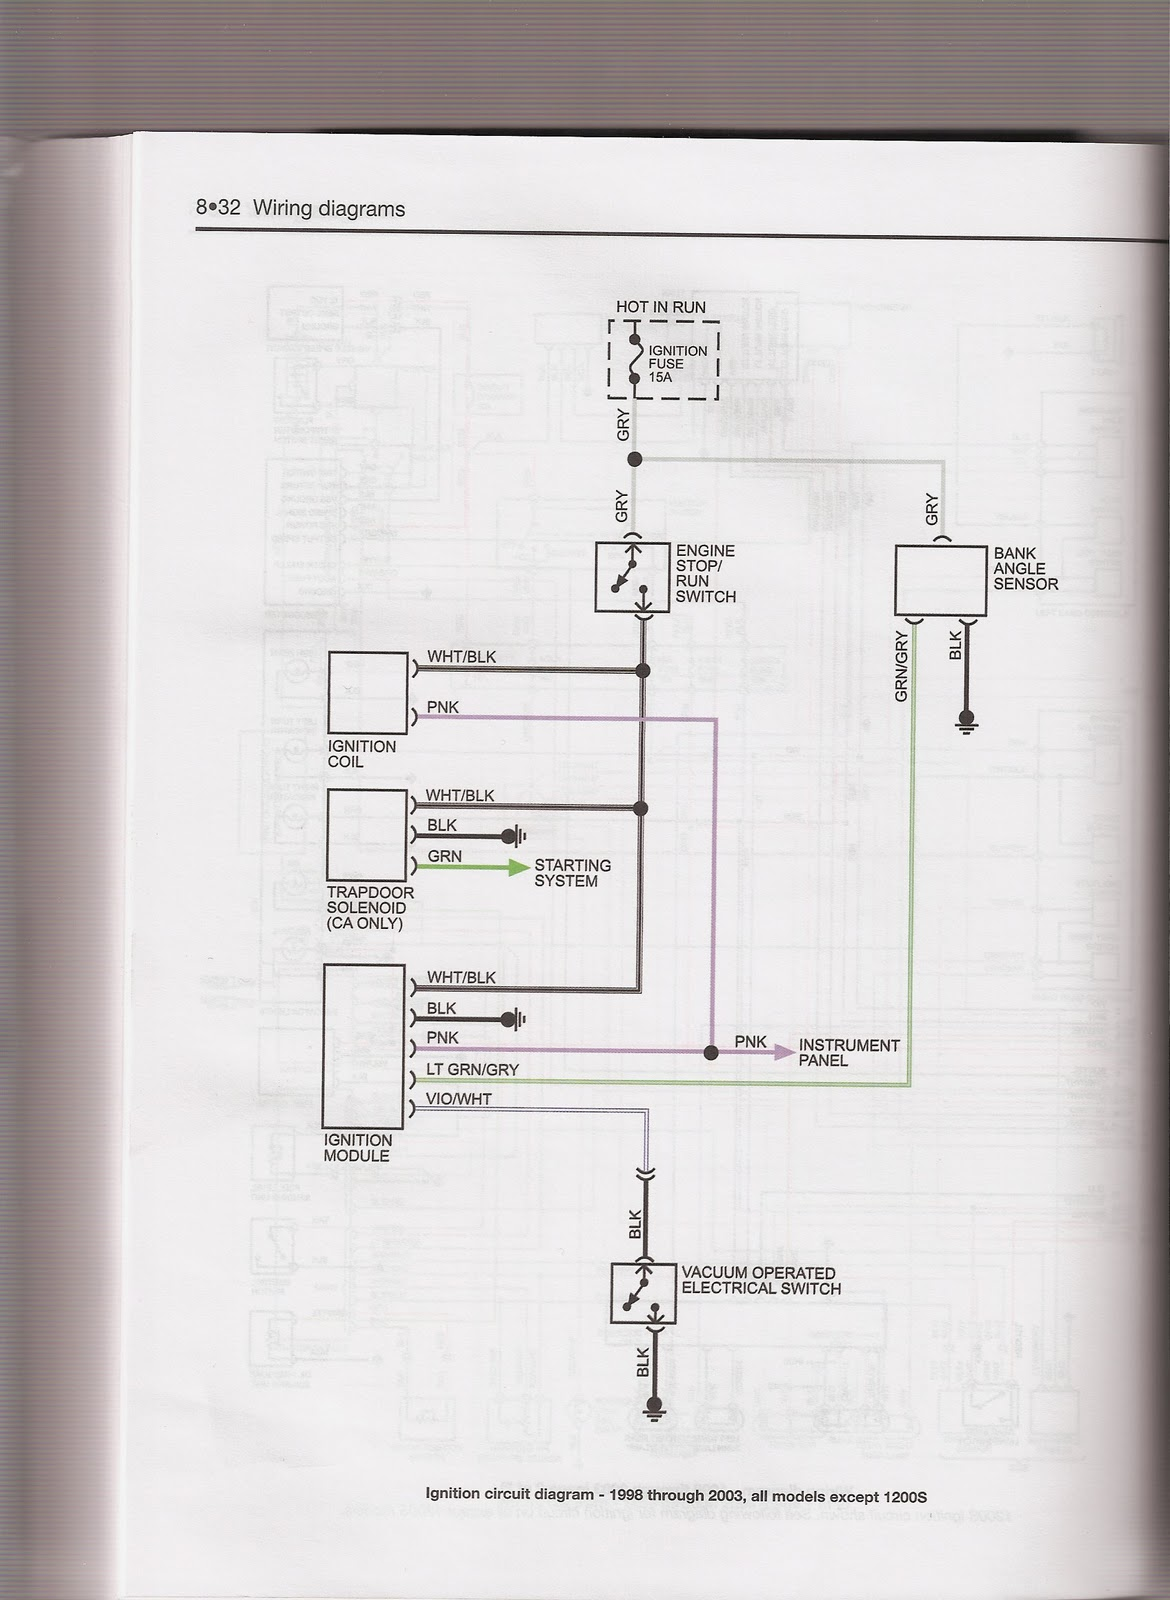 SCAN0016 kracker jacks wiring diagrams for a 98 03 sportster sportster wiring diagram at gsmportal.co